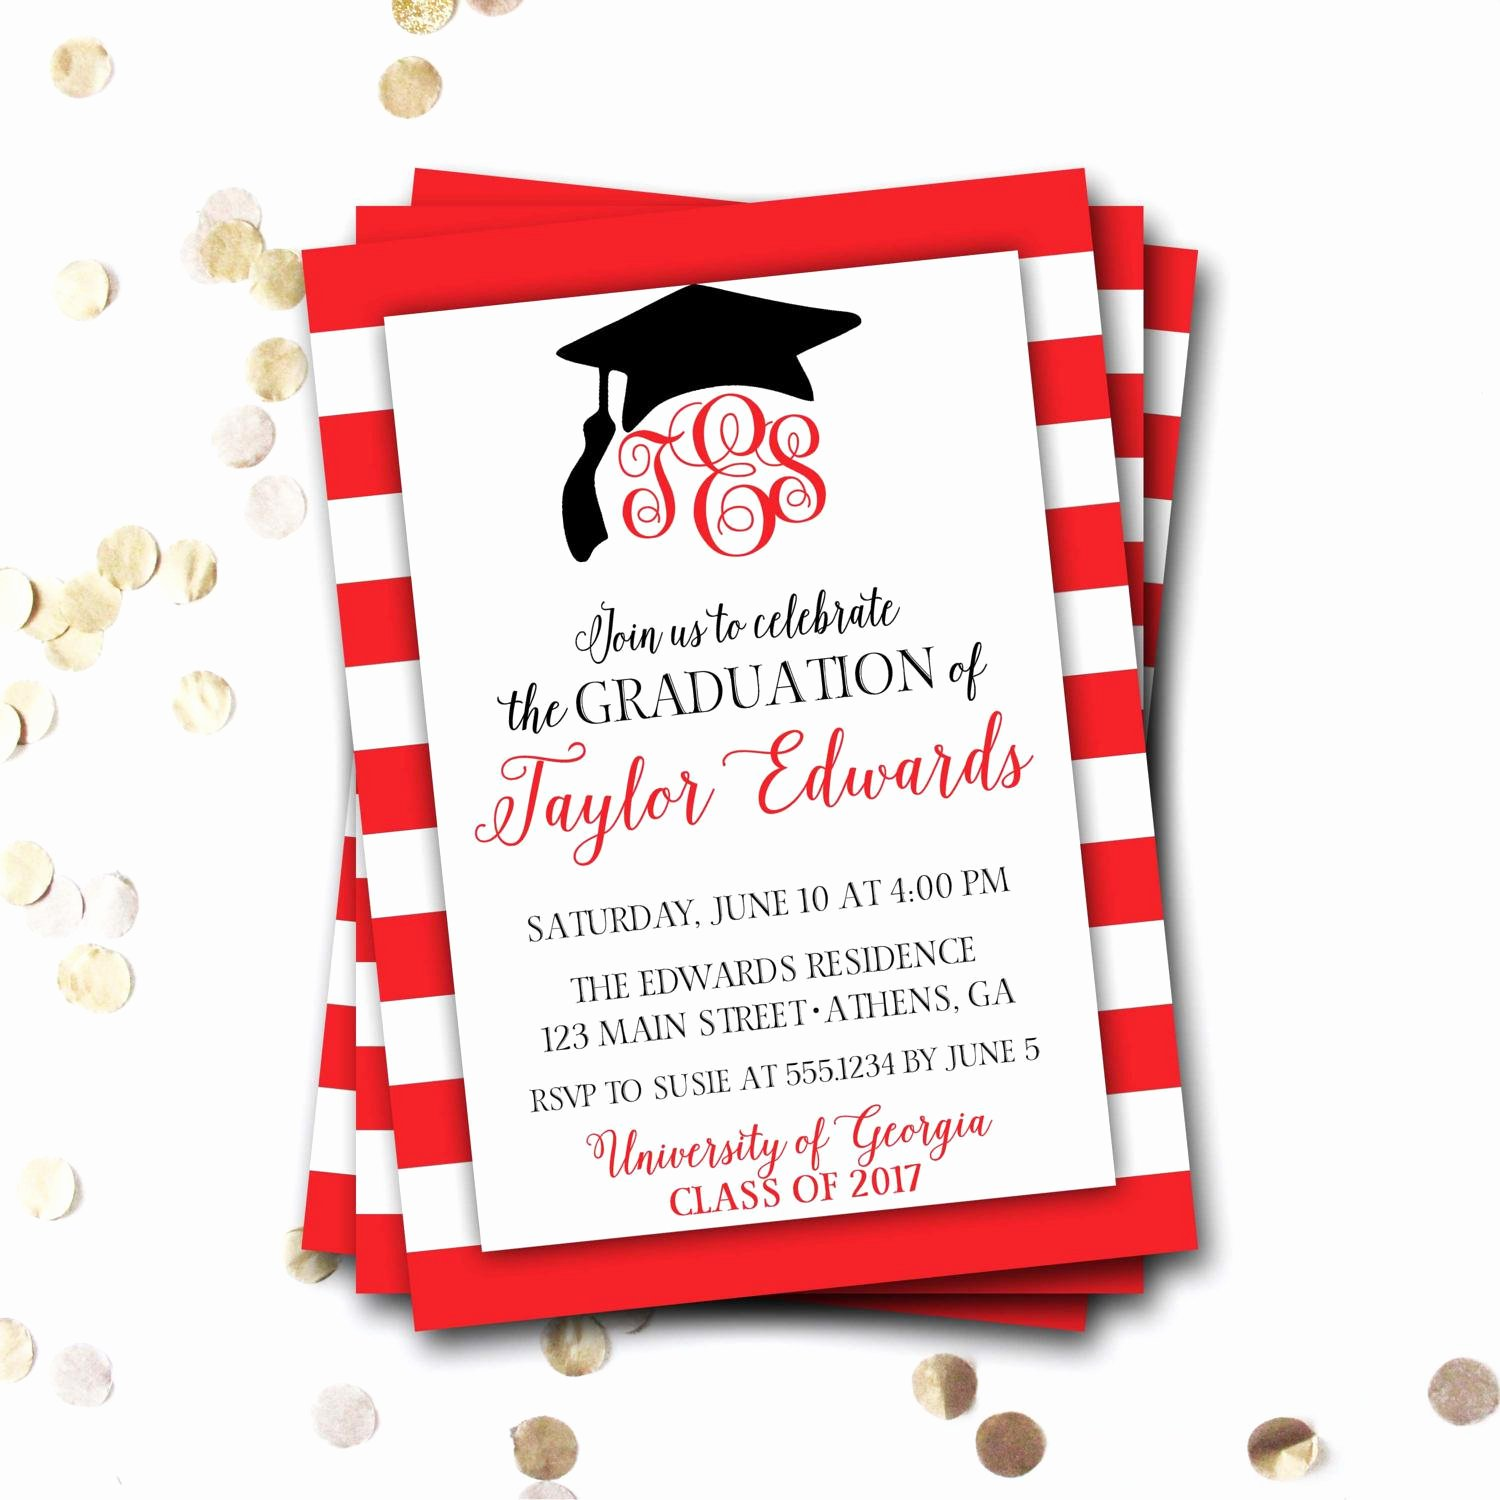 Graduation Ceremony Invitation Card Inspirational Graduation Invitation Graduation Invitation Cards